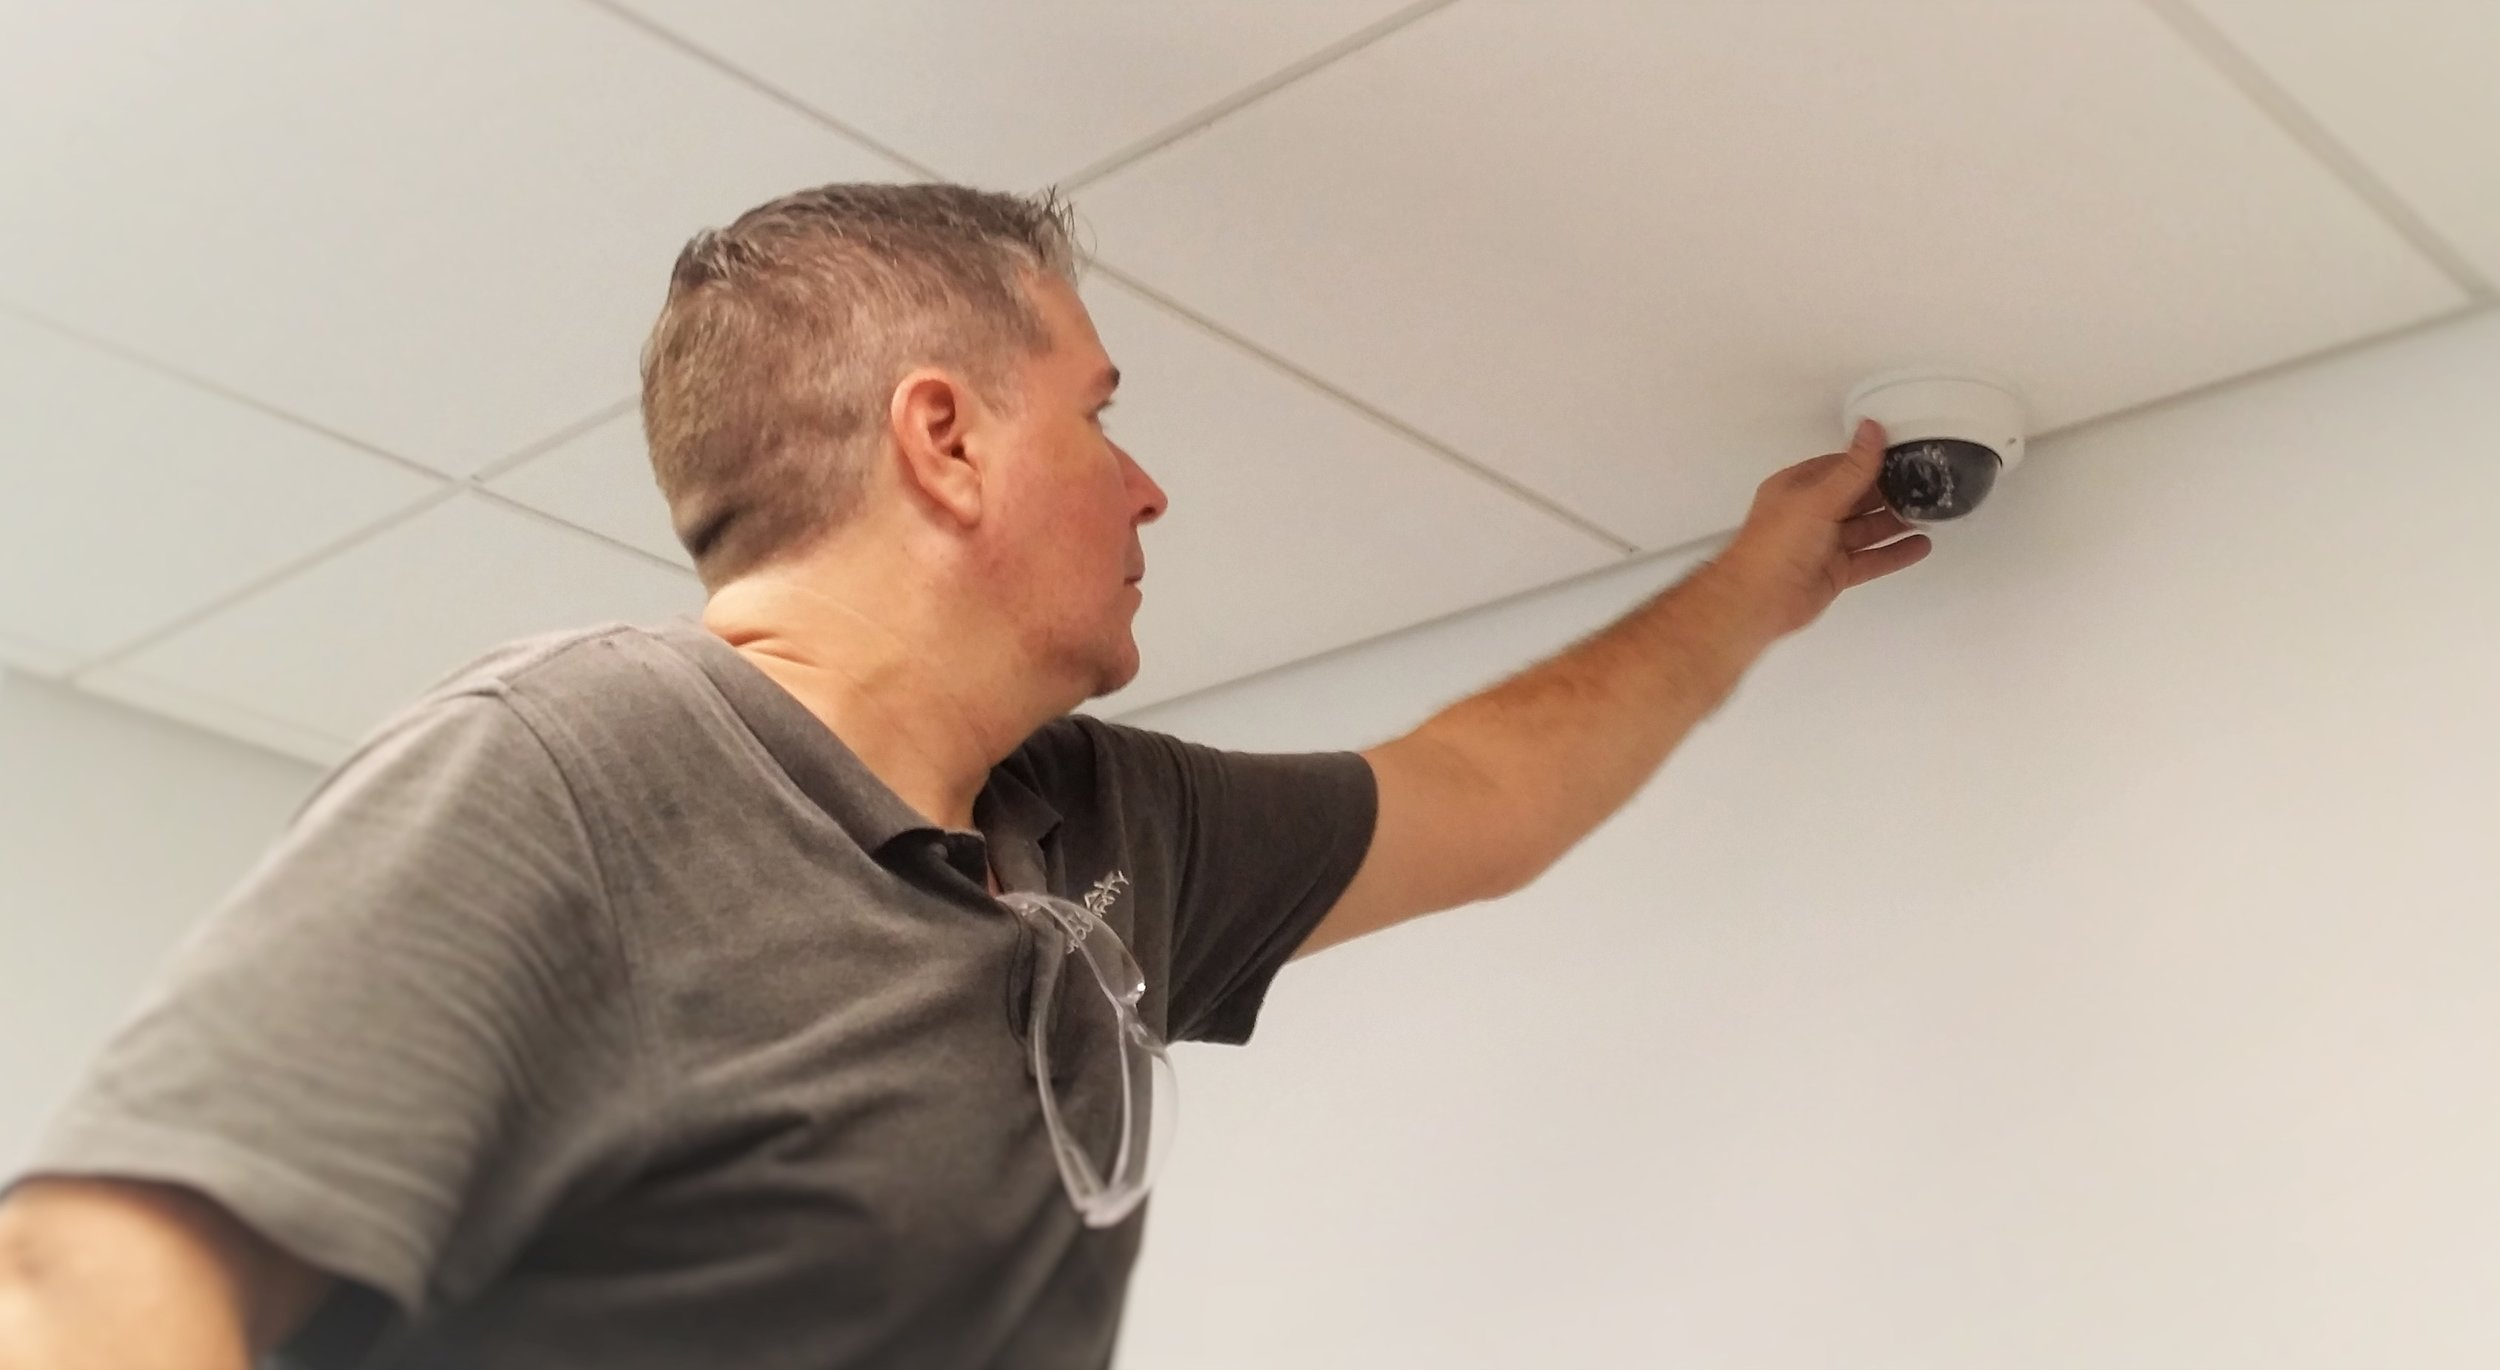 professional installation by licensed and experienced technicians